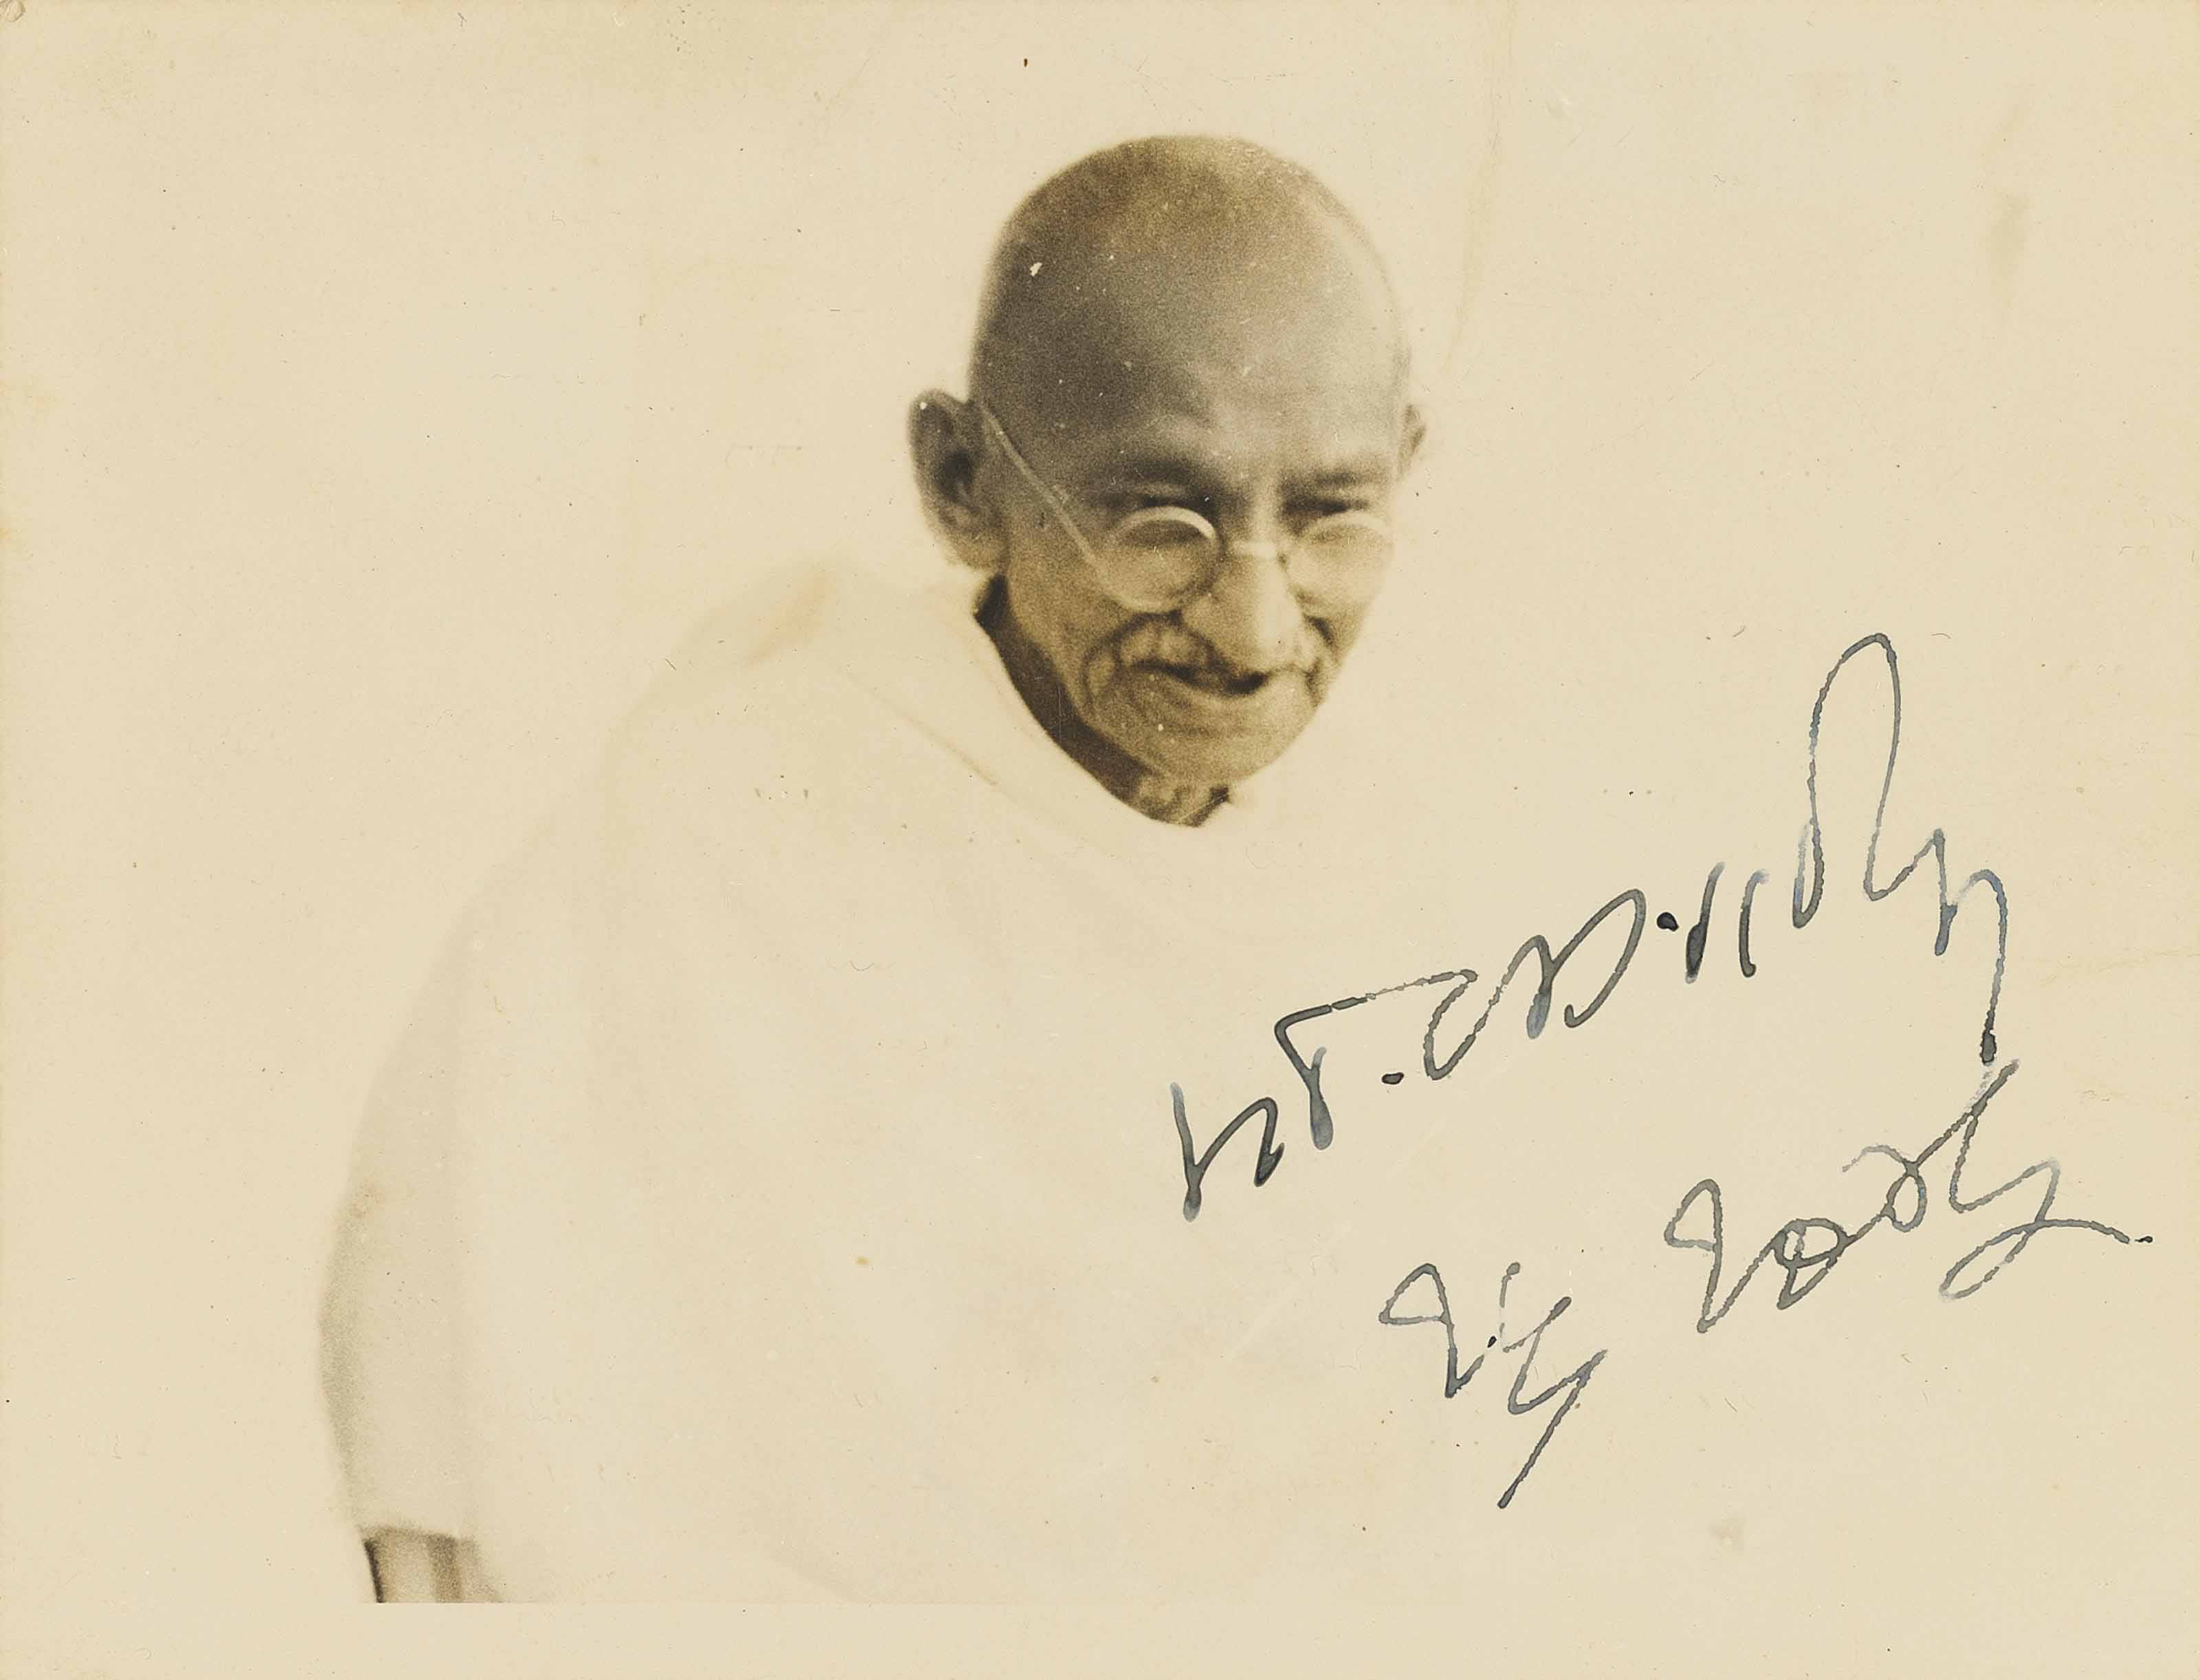 GANDHI, Mohandas Karamchand (1869-1948). Portrait photograph signed (on the image, in Devanagari script, 'M.K. Gandhi') and indistinctly dated ?1 June 1922 (or 23), 89 x 115mm (surface slightly scratched).